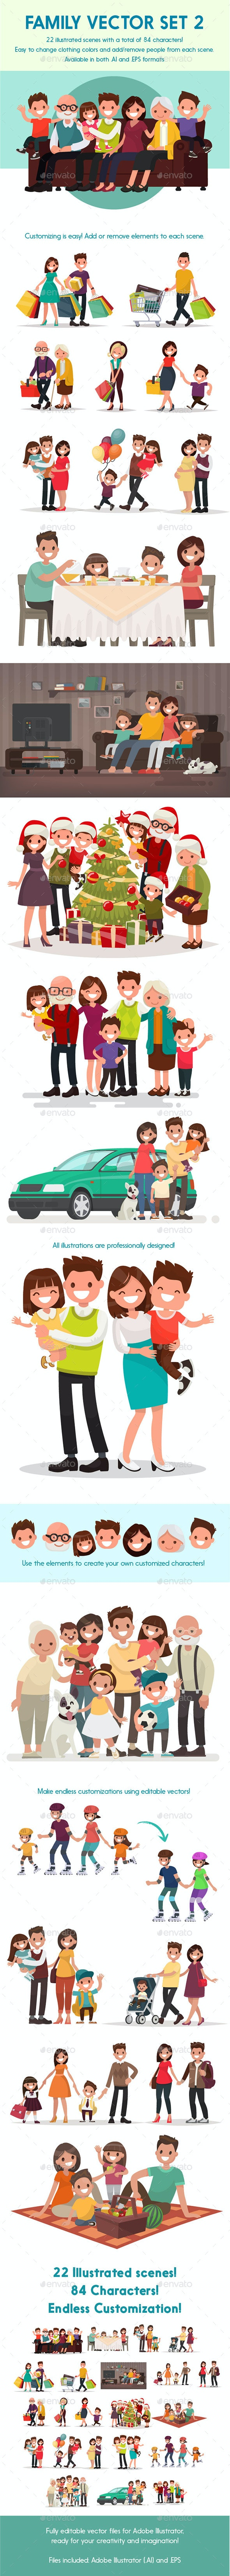 Vector Family 2 Illustration Pack - People Characters